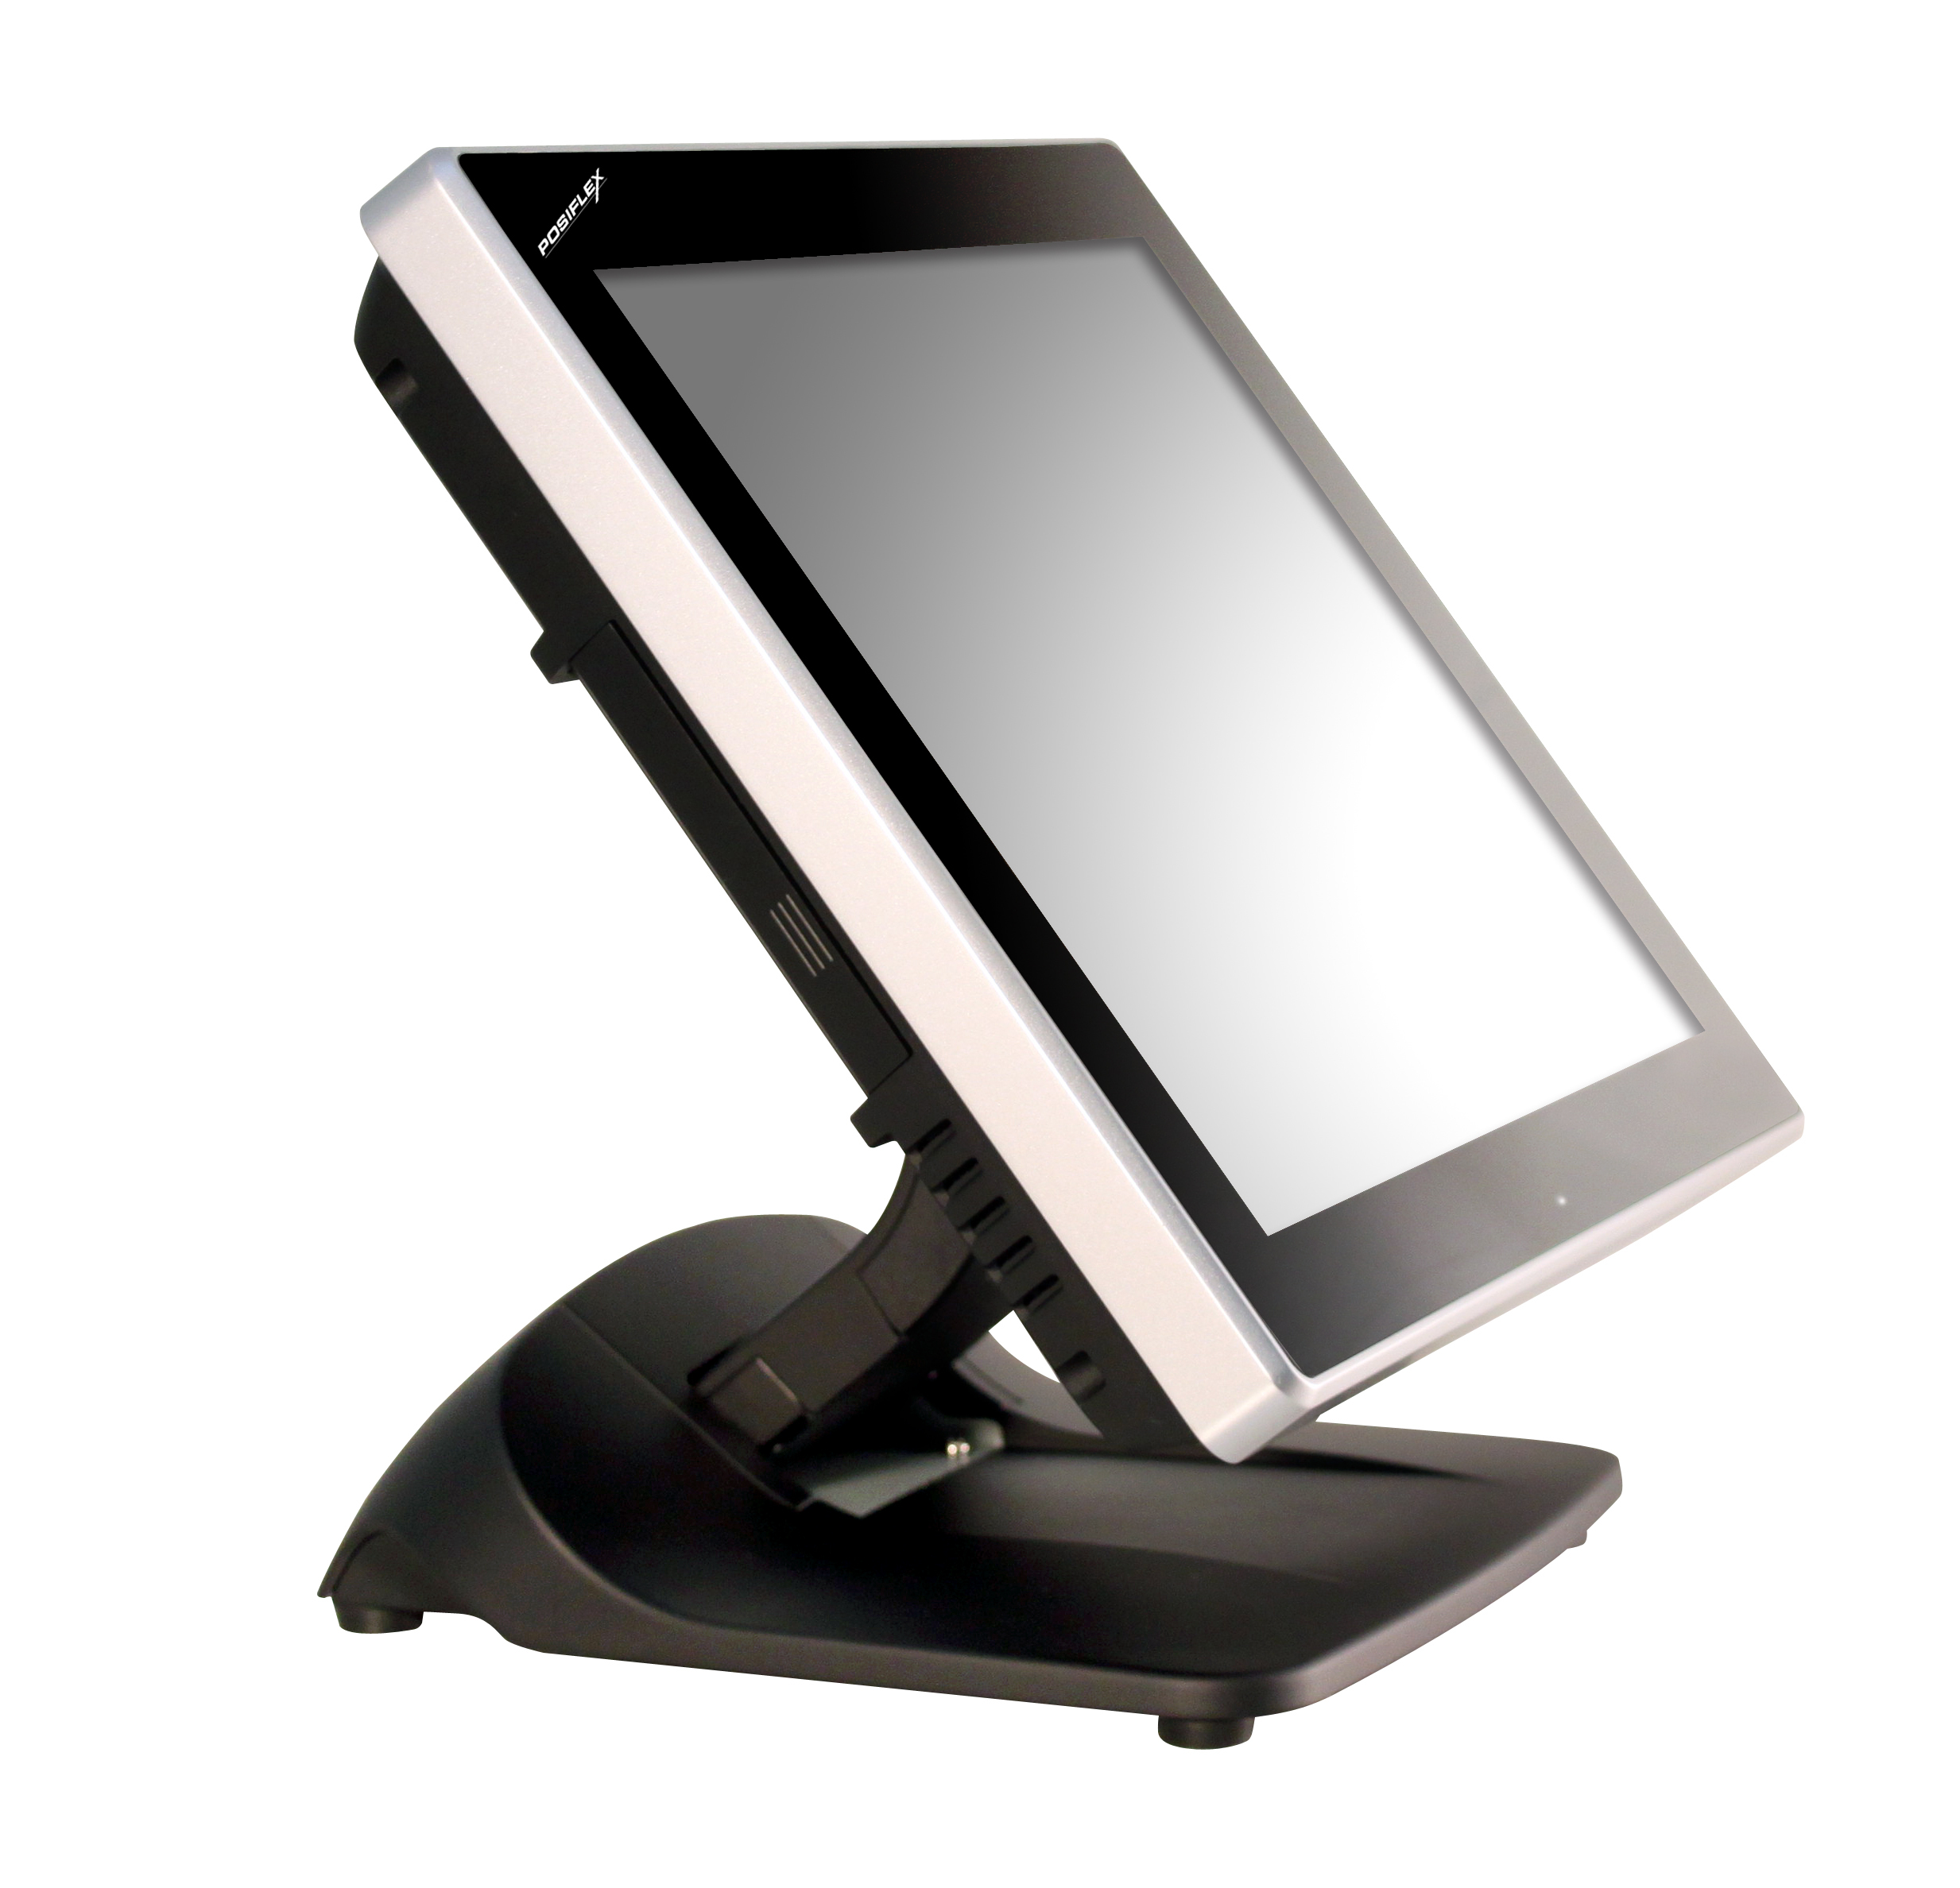 """XT4015 - New, powerful 15"""" bezel-free touch screen terminal with foldable base. In addition to its new, sleek, contemporary design, the XT4015 - with its scalable choice of three Intel(R) CPUs to select from (up to Intel(R) Core i5-3550s, 3.7GHz) - offers optimum power and price performance for virtually every solution. The XT4015 bezel-free projective capacitive or resistive touch screen terminal comes standard with 4GB DDR3 RAM, and can be upgraded up to 16GB. With a whole host of connectivity features, the XT4015 also has RAID 1, a mini-PCIe for WiFi and VESA mount options."""